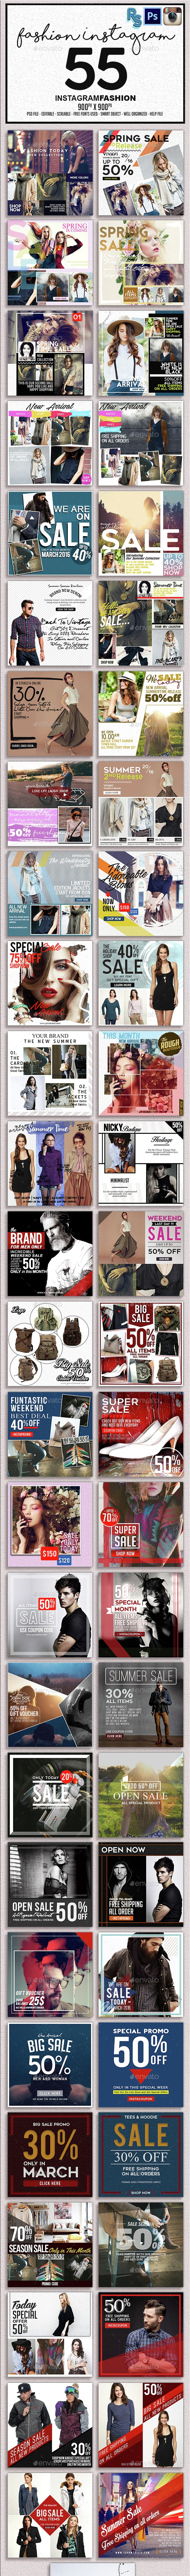 Instagram Fashion Banners - Banners & Ads Web Elements